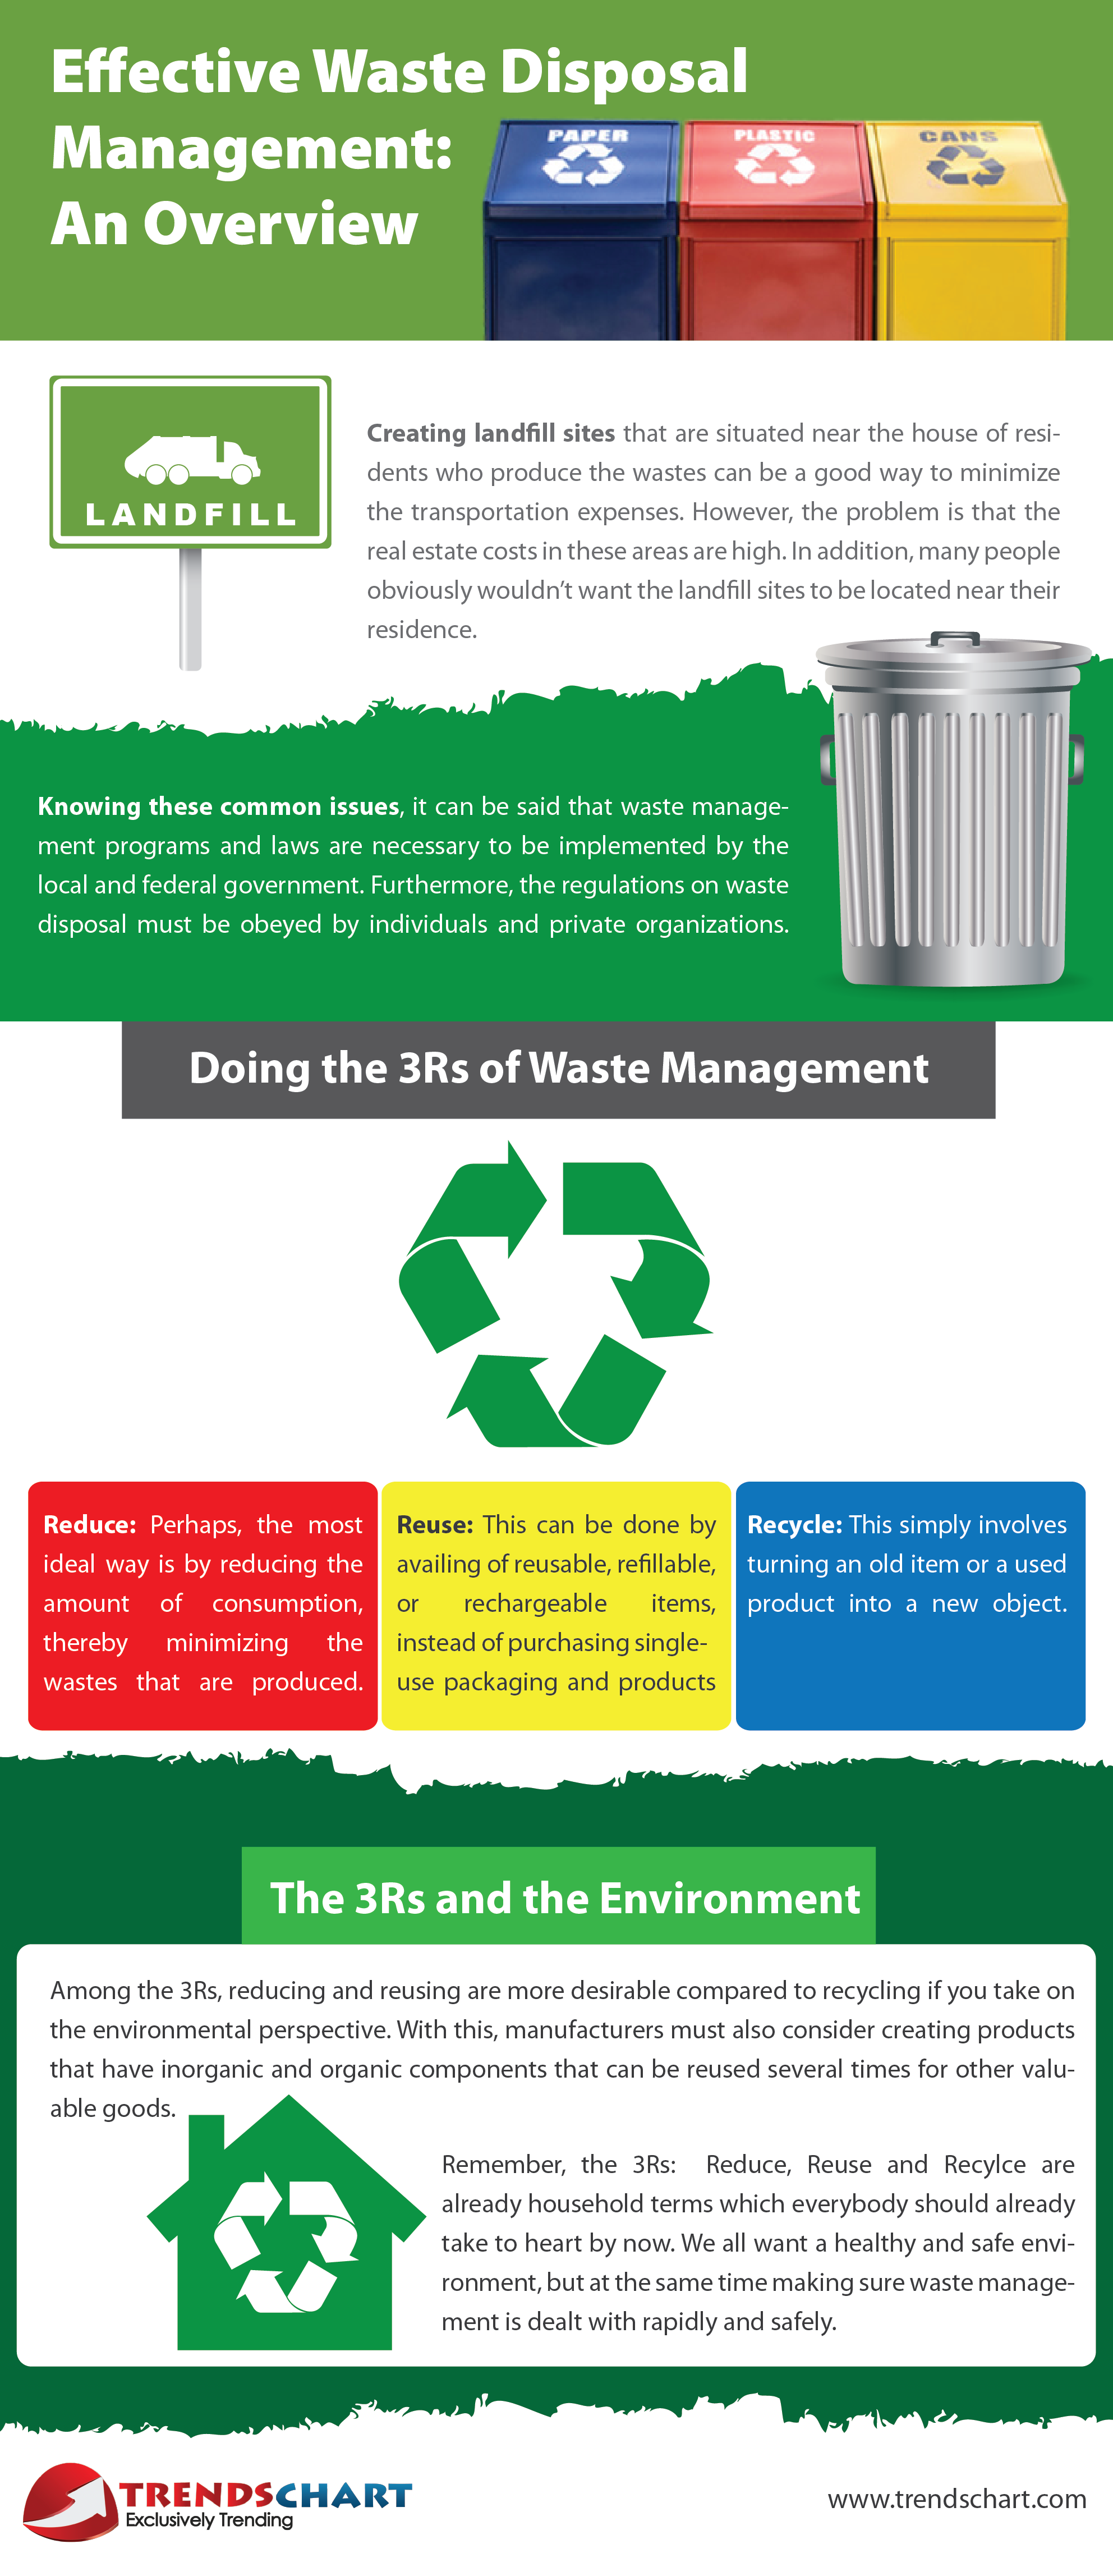 waste disposal methods must be improved Generation of solid waste and disposal, coupled with poor collection services, poses a great threat to environmental quality and human health (jin et al.